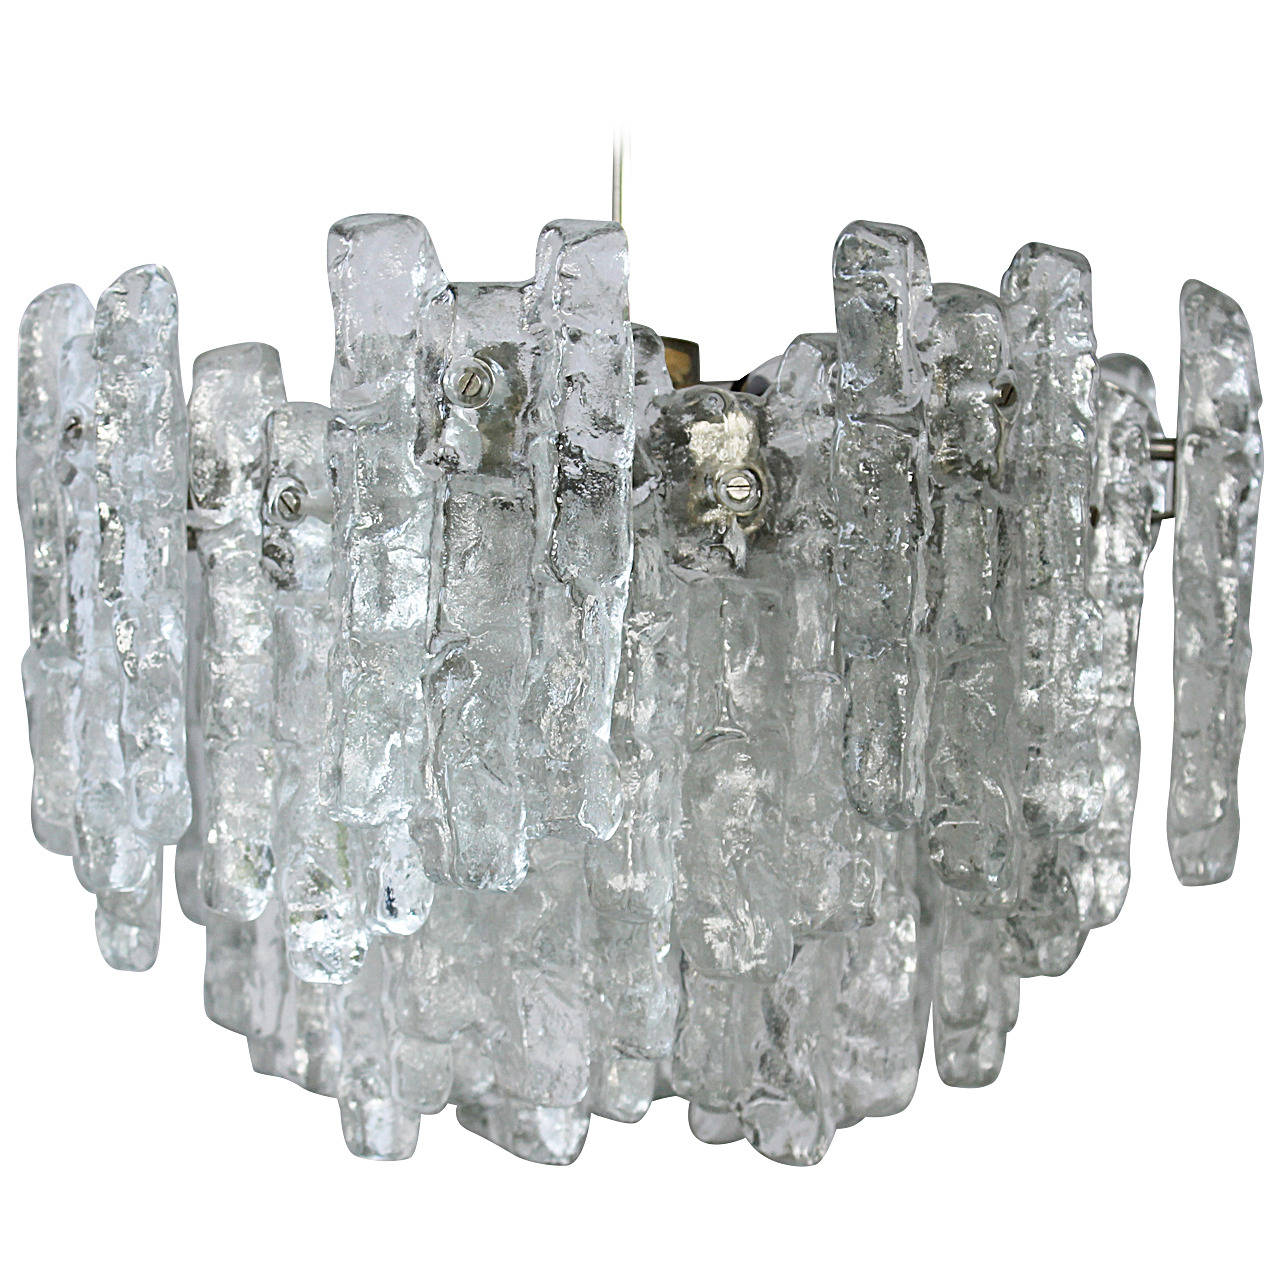 Vintage kalmar icicle chandelier for sale at 1stdibs vintage kalmar icicle chandelier for sale aloadofball Gallery